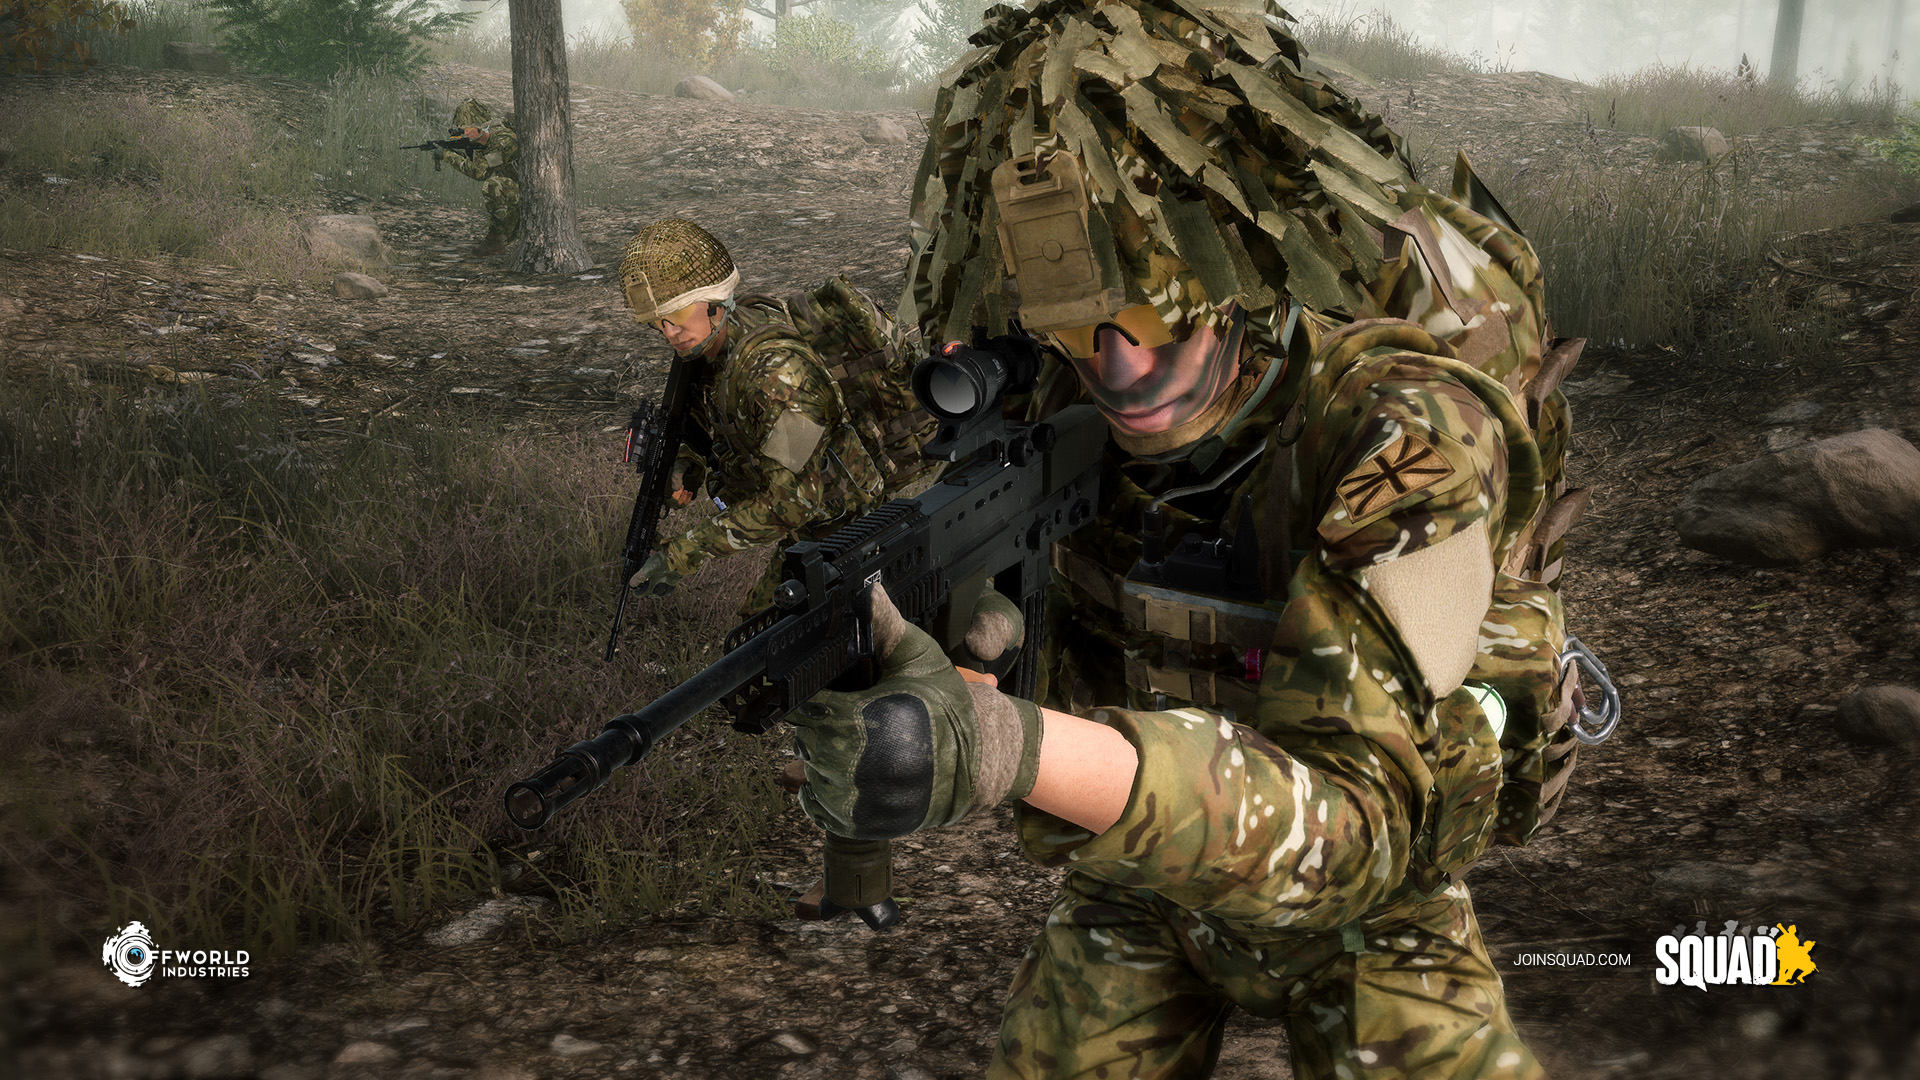 02_Squad_British_Soldiers_Kamdesh